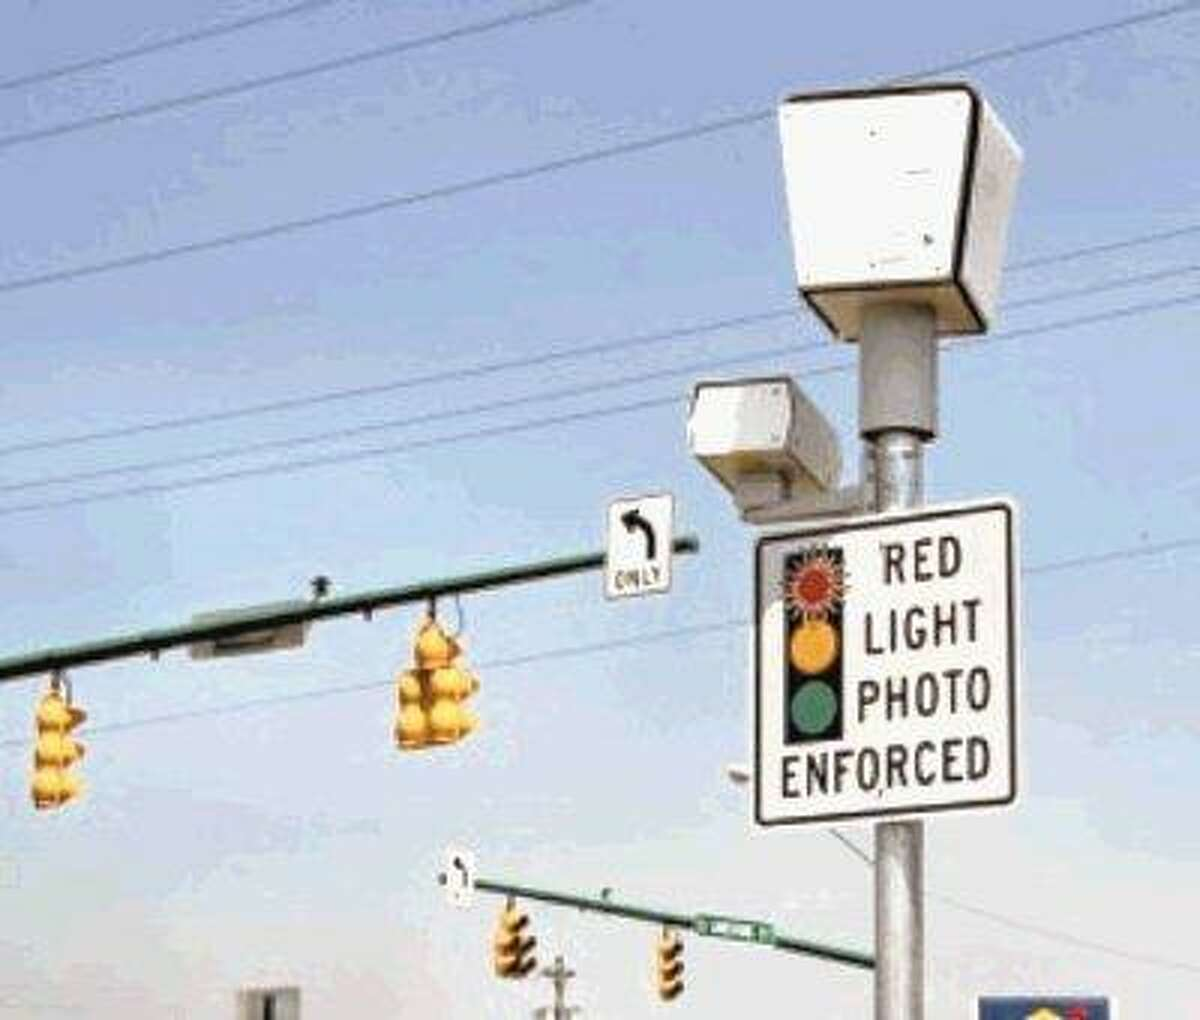 Beyond legal arguments, red light cameras are simply an oppressive way to enforce traffic laws, allowing for no nuance or subjective judgment, Hewing F. Van Der Grinten, founder of Houston Coalition Against Red Light Cameras, said in July 2018.